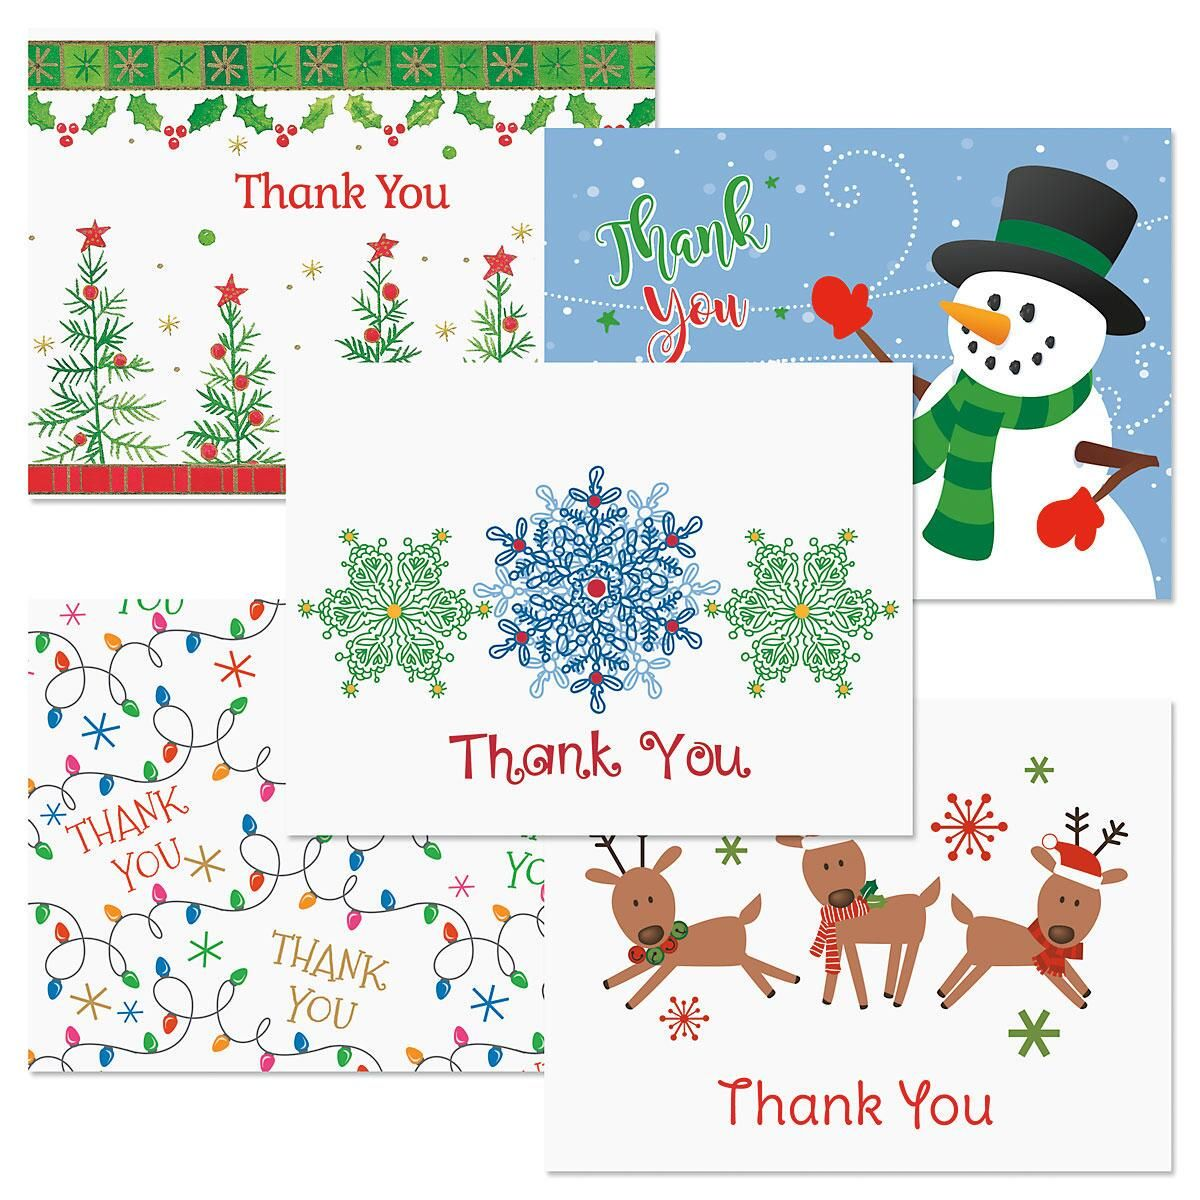 Photo Kitchen Calendar Offers Online Photo Prints Personalised Photo Gifts Aldi Photos Christmas Season Thank You Note Cards Current Catalog